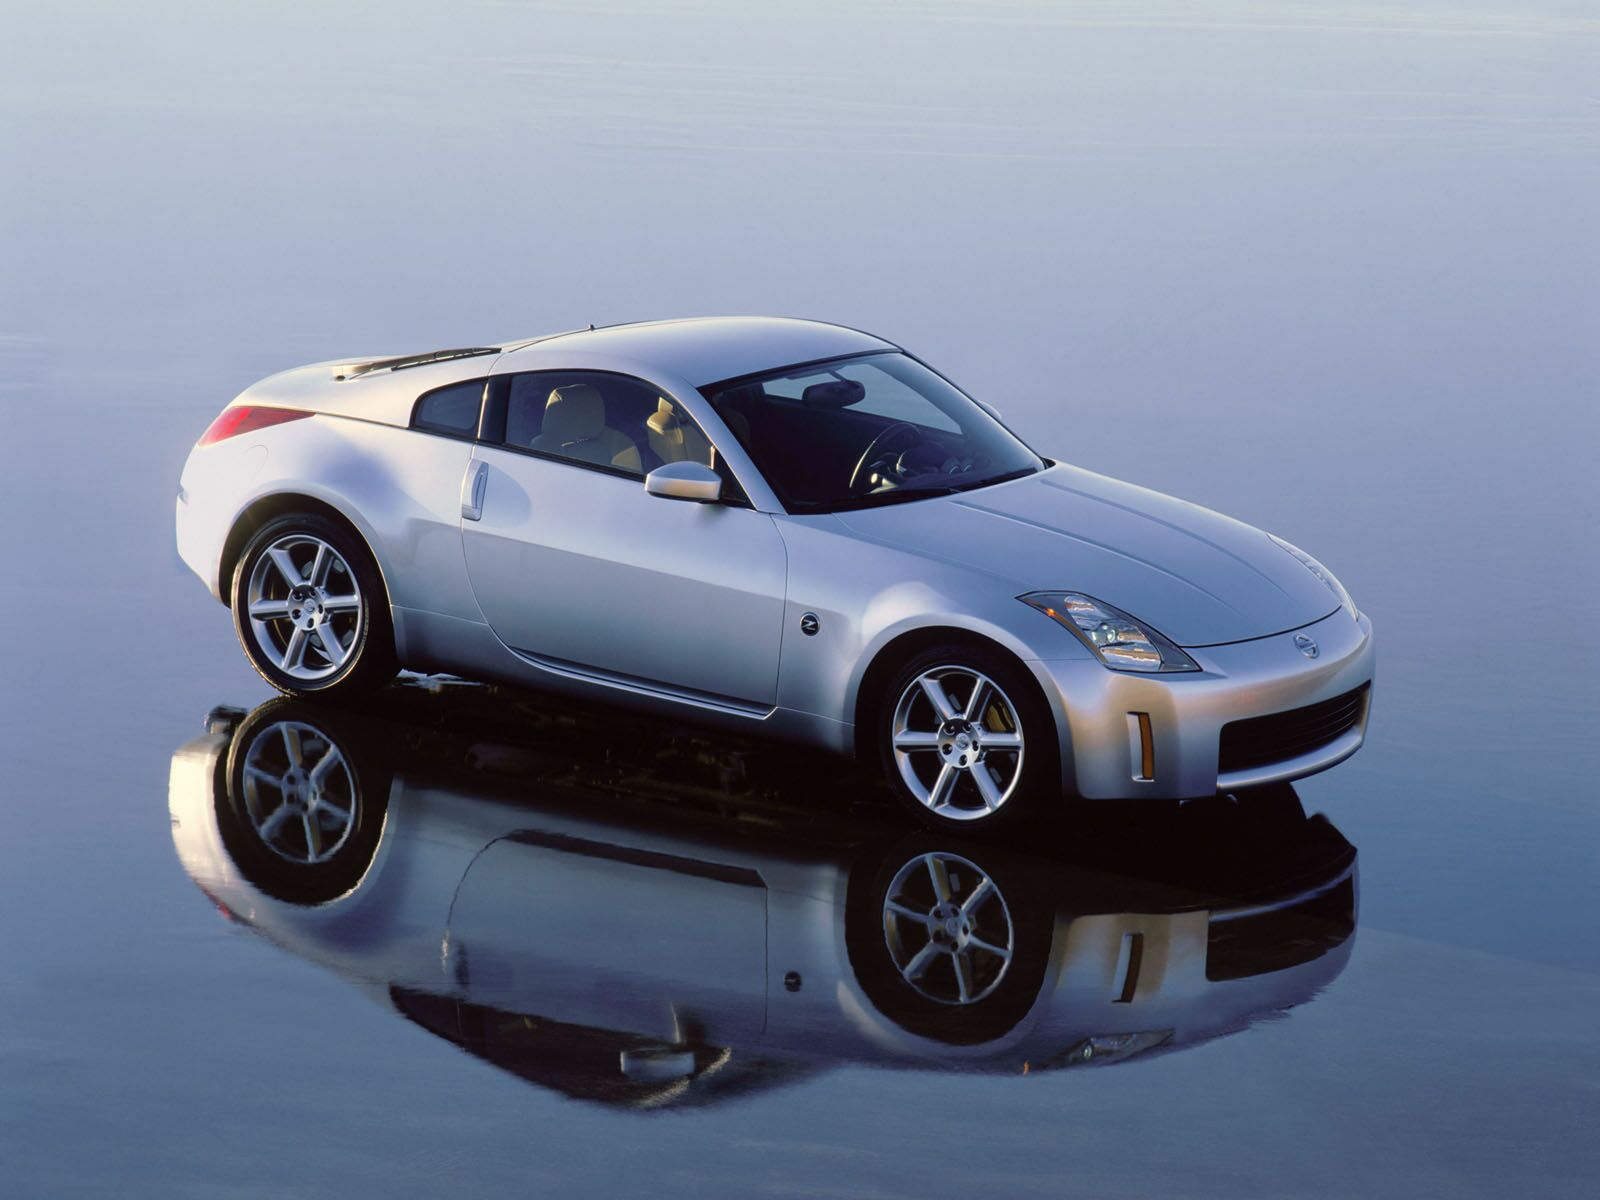 350z Reflection Wallpapers 350z Reflection Stock Photos